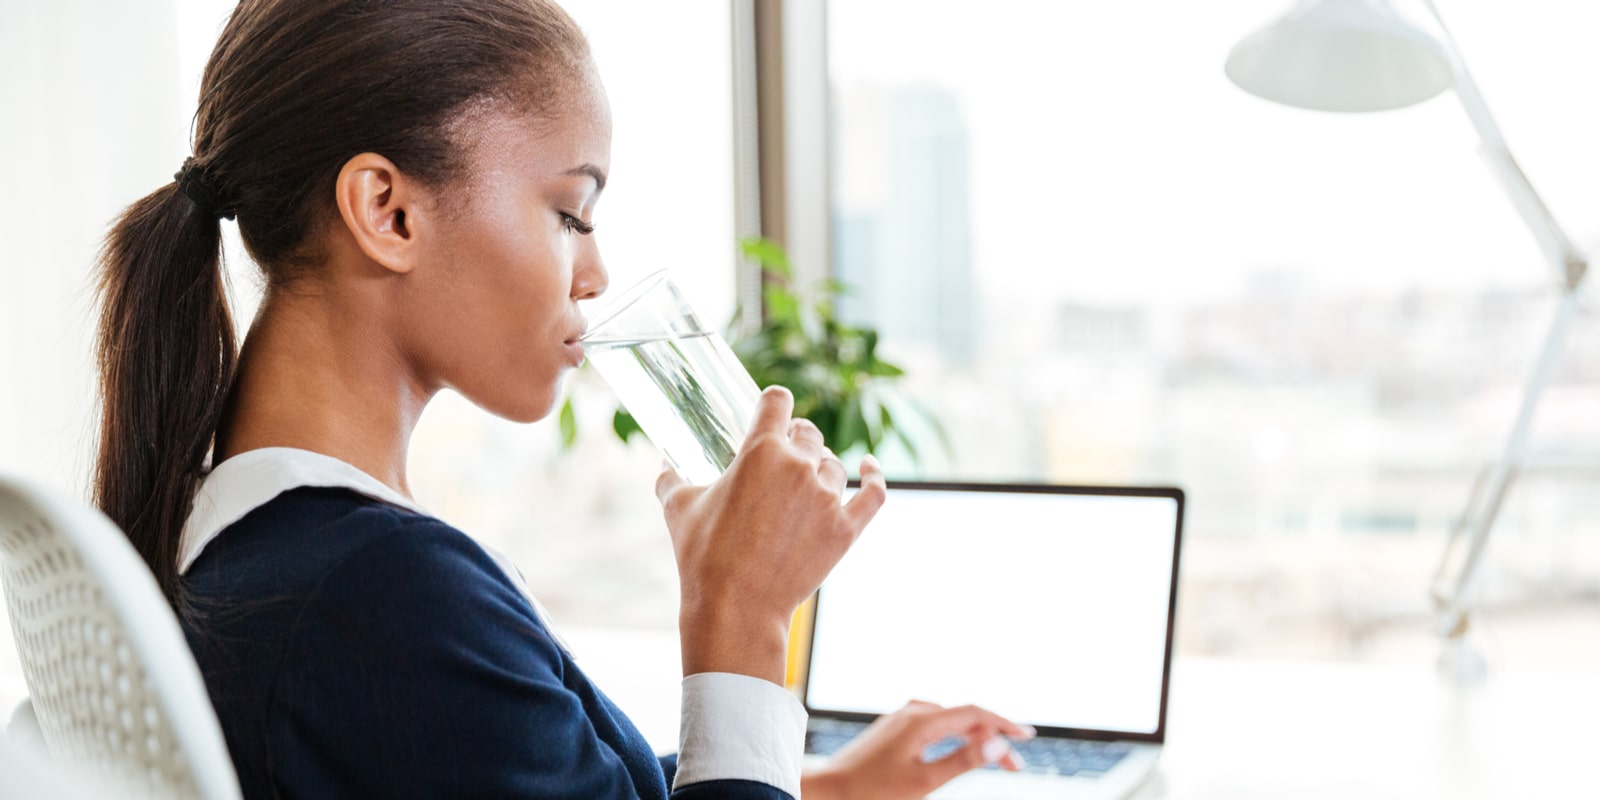 Woman drinking water sitting at her computer